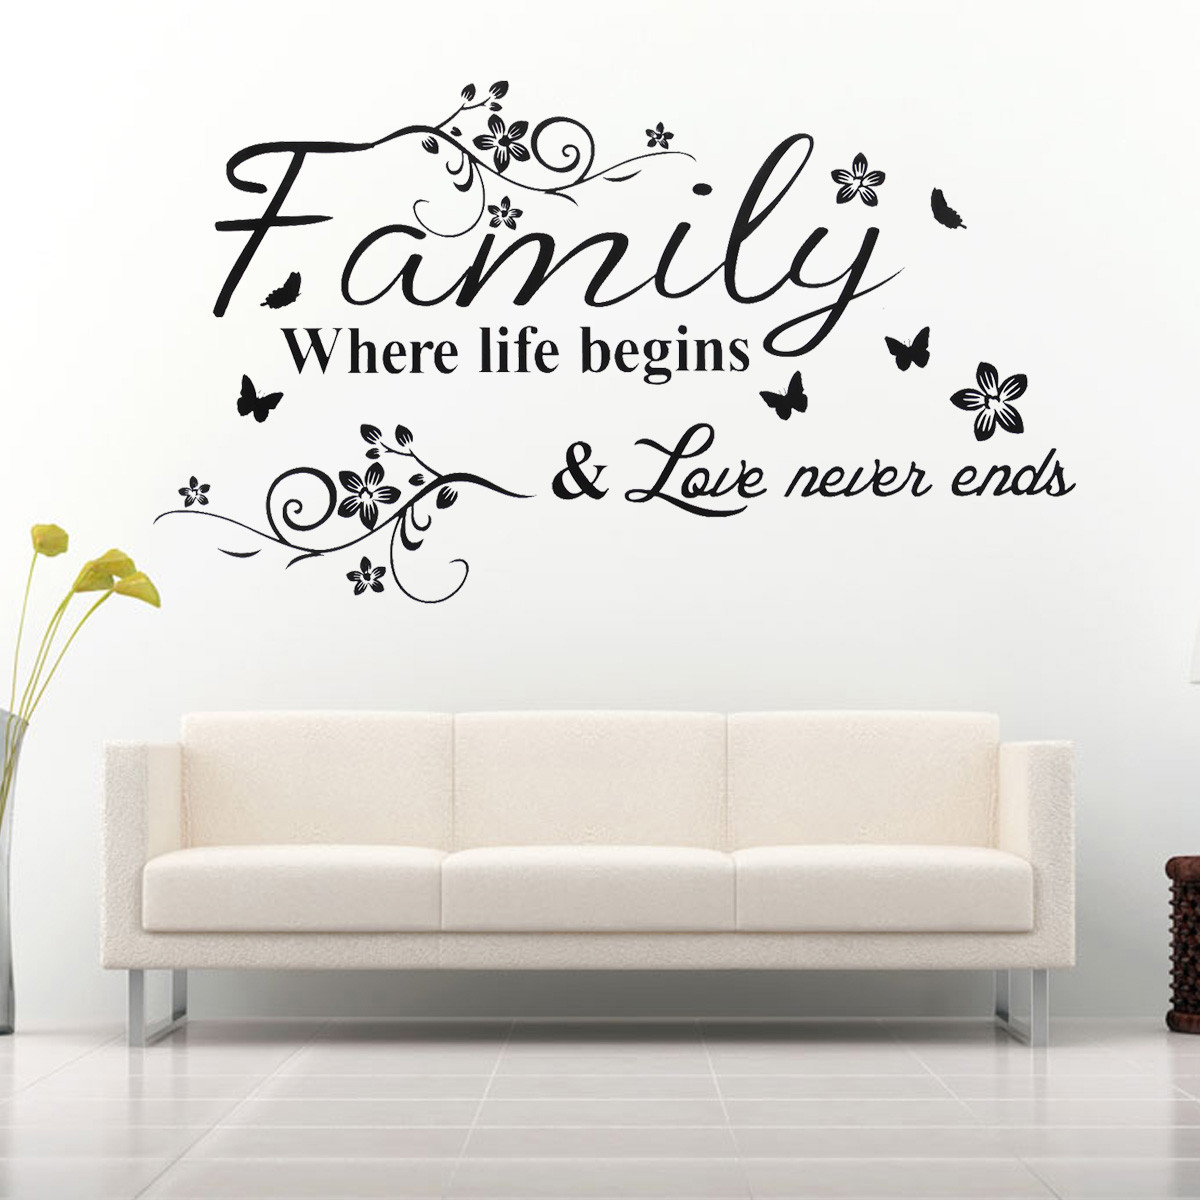 Wall Decals Walmart Com